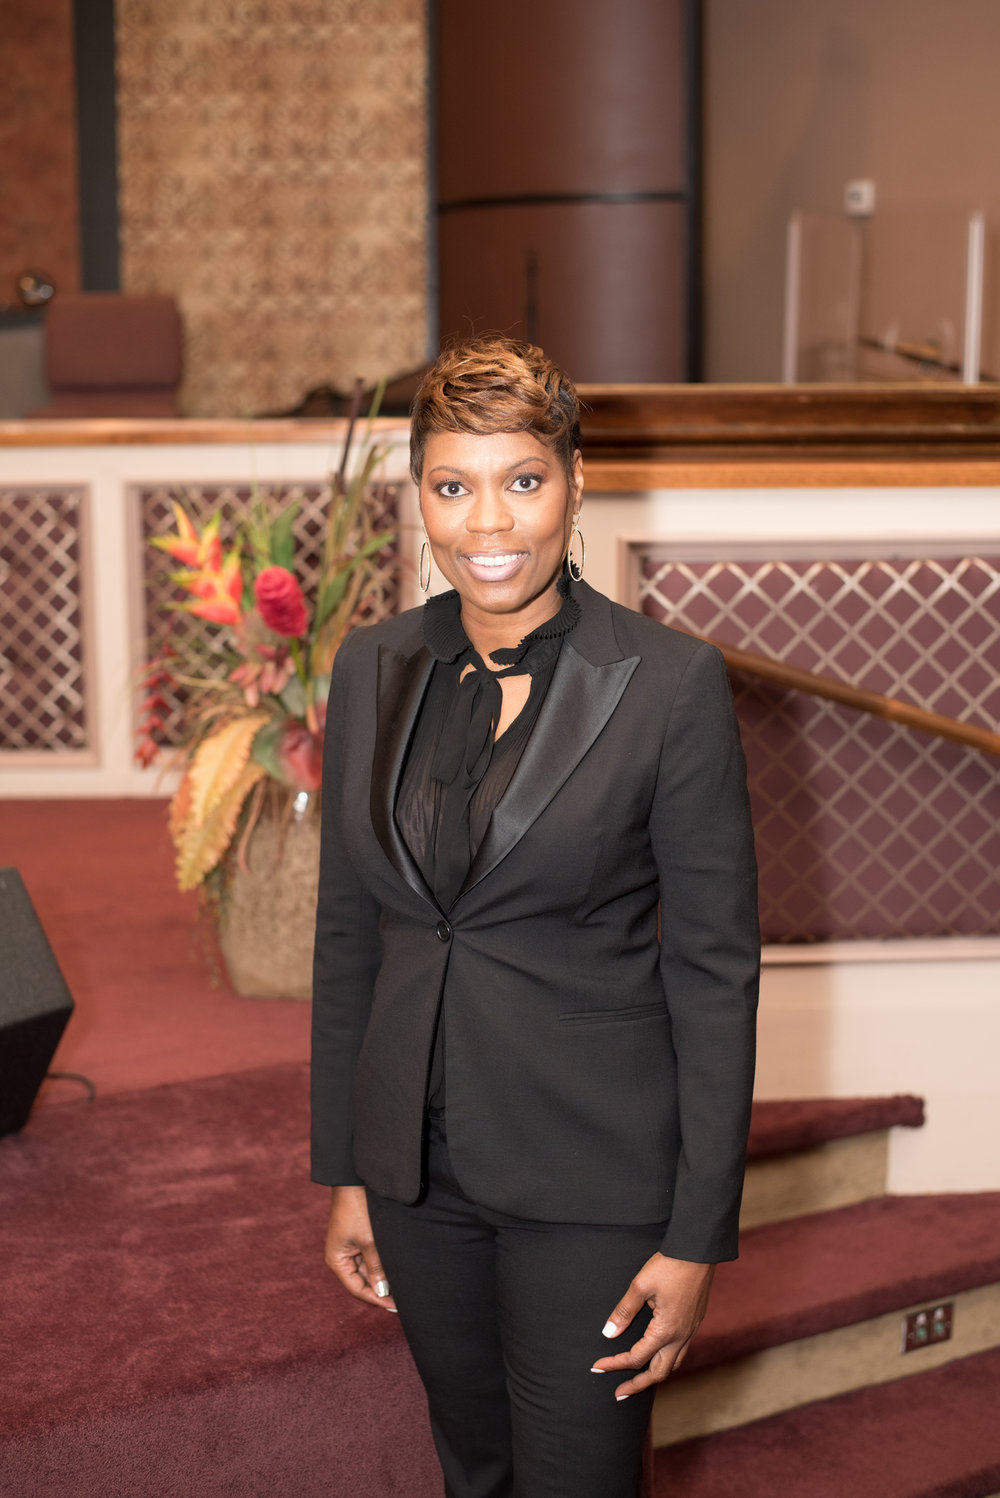 Pastor Deneice Henderson, Executive Administrator to Bishop Malone